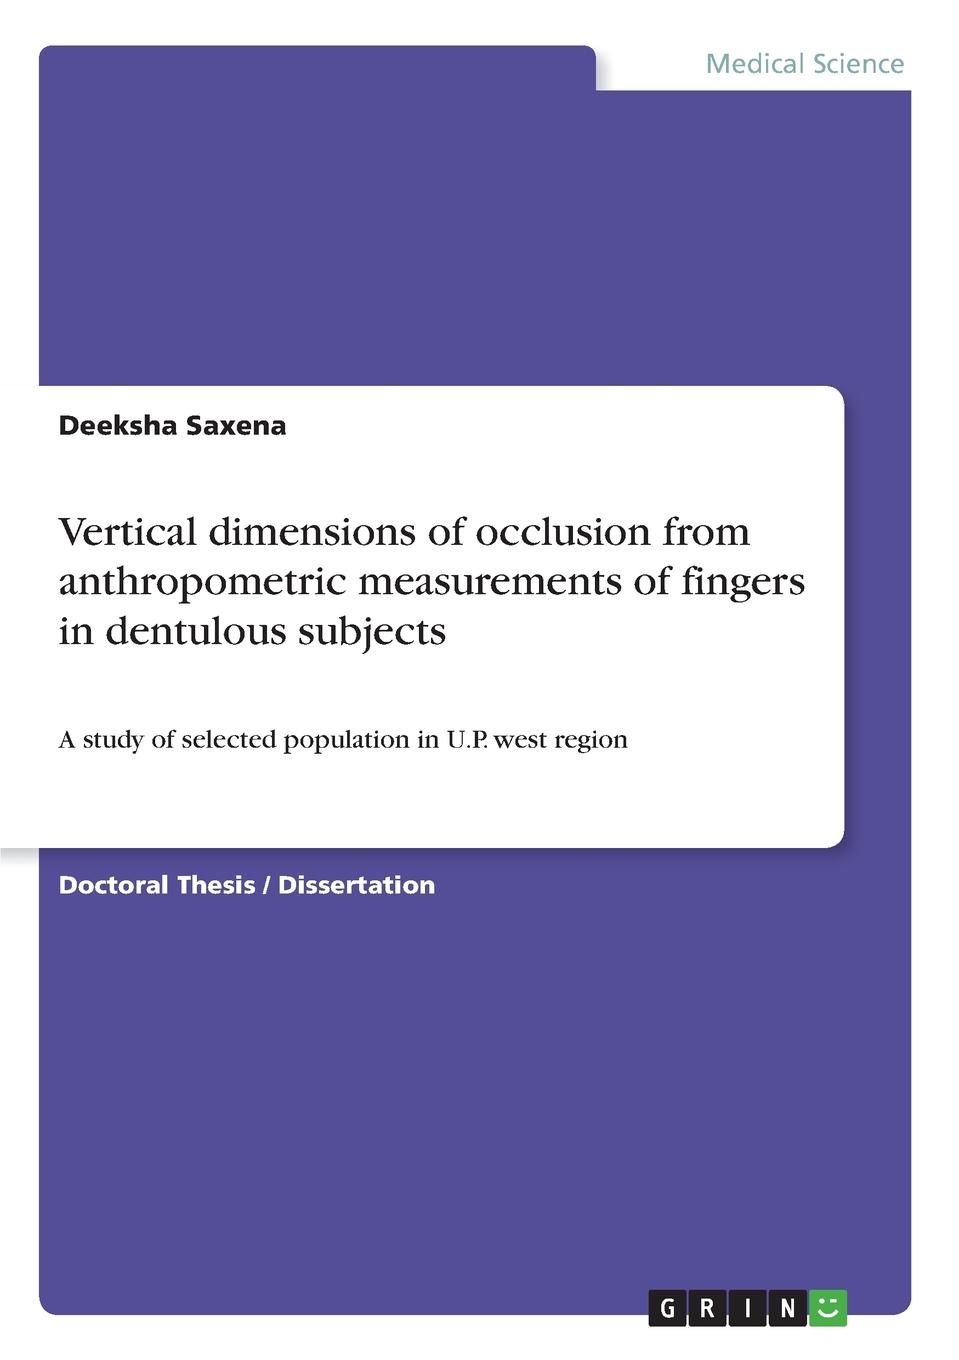 Deeksha Saxena Vertical dimensions of occlusion from anthropometric measurements of fingers in dentulous subjects 09 vertical single joint potentiometer b50k handle length 17mm